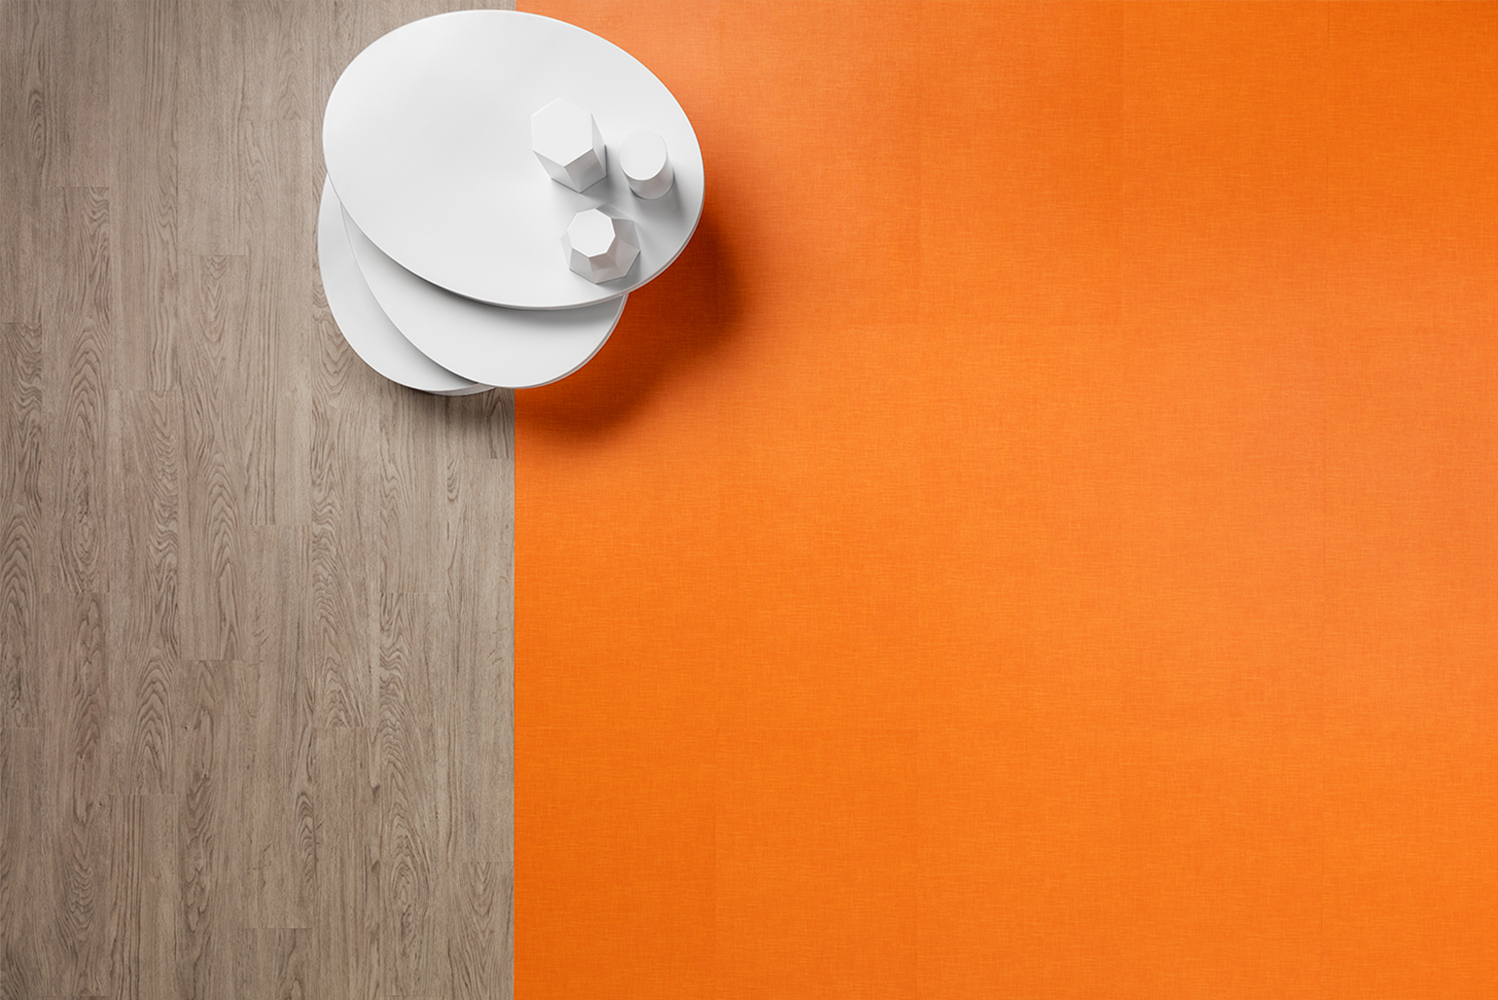 Parterre Flooring launched the Studio collection.